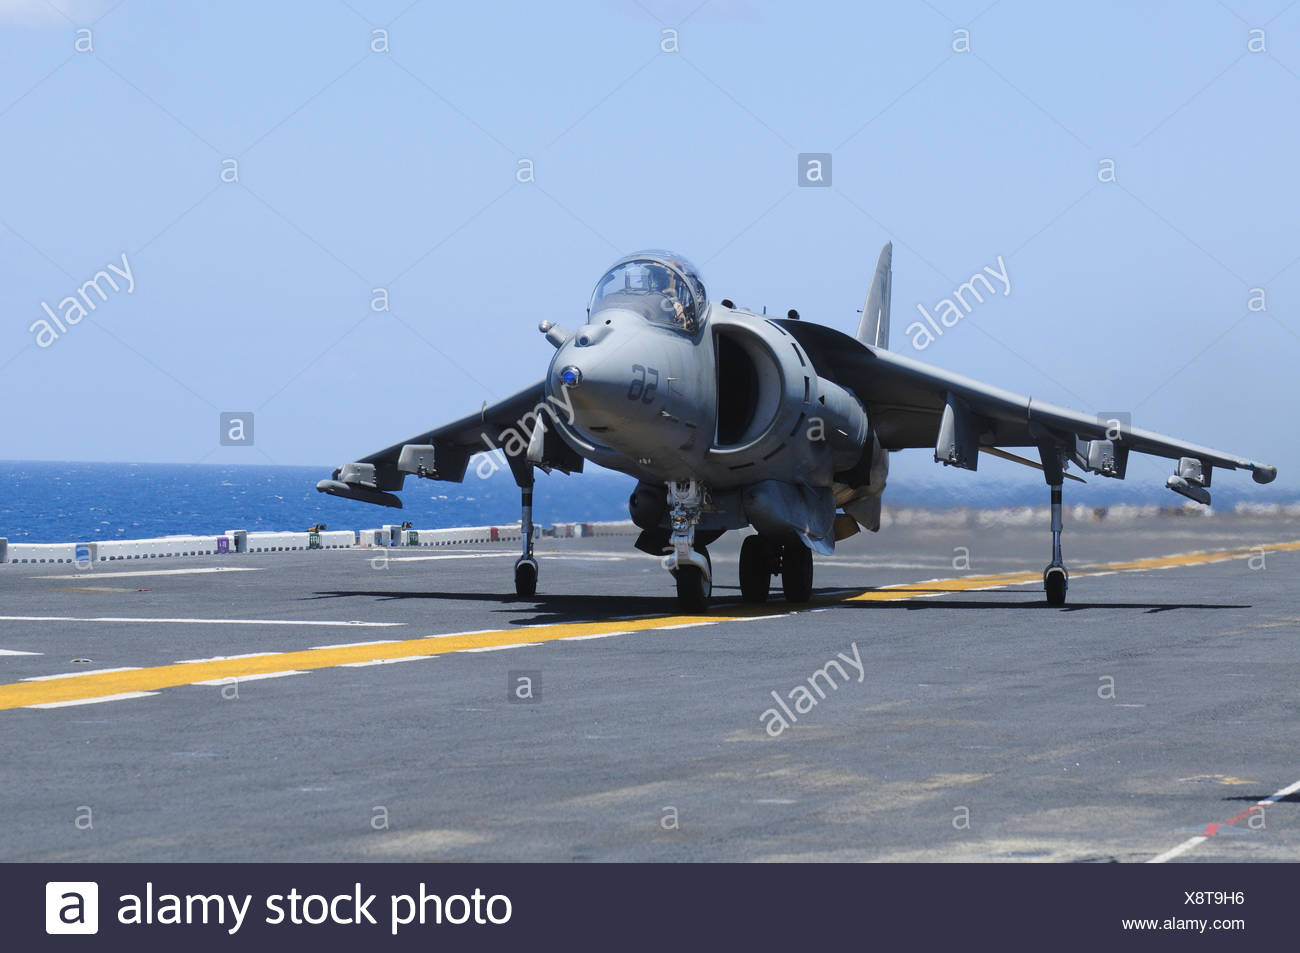 An AV-8B Marine Harrier II lands on the flight deck of the USS Peleliu (LHA-5) during flight operations in the Pacific Ocean Stock Photo